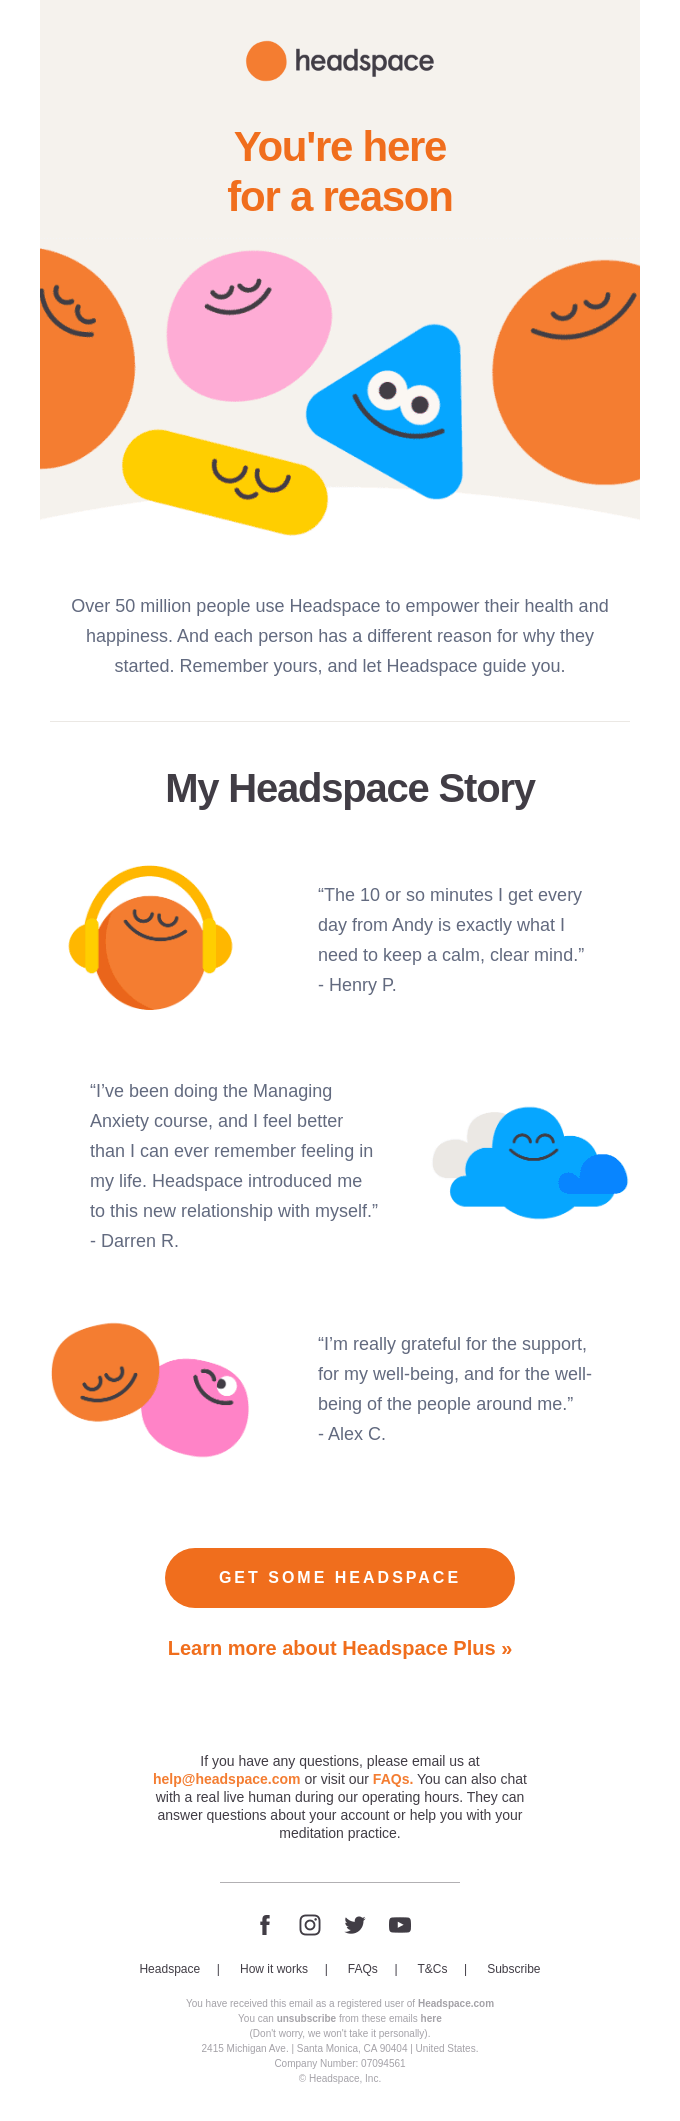 Where will Headspace take you?